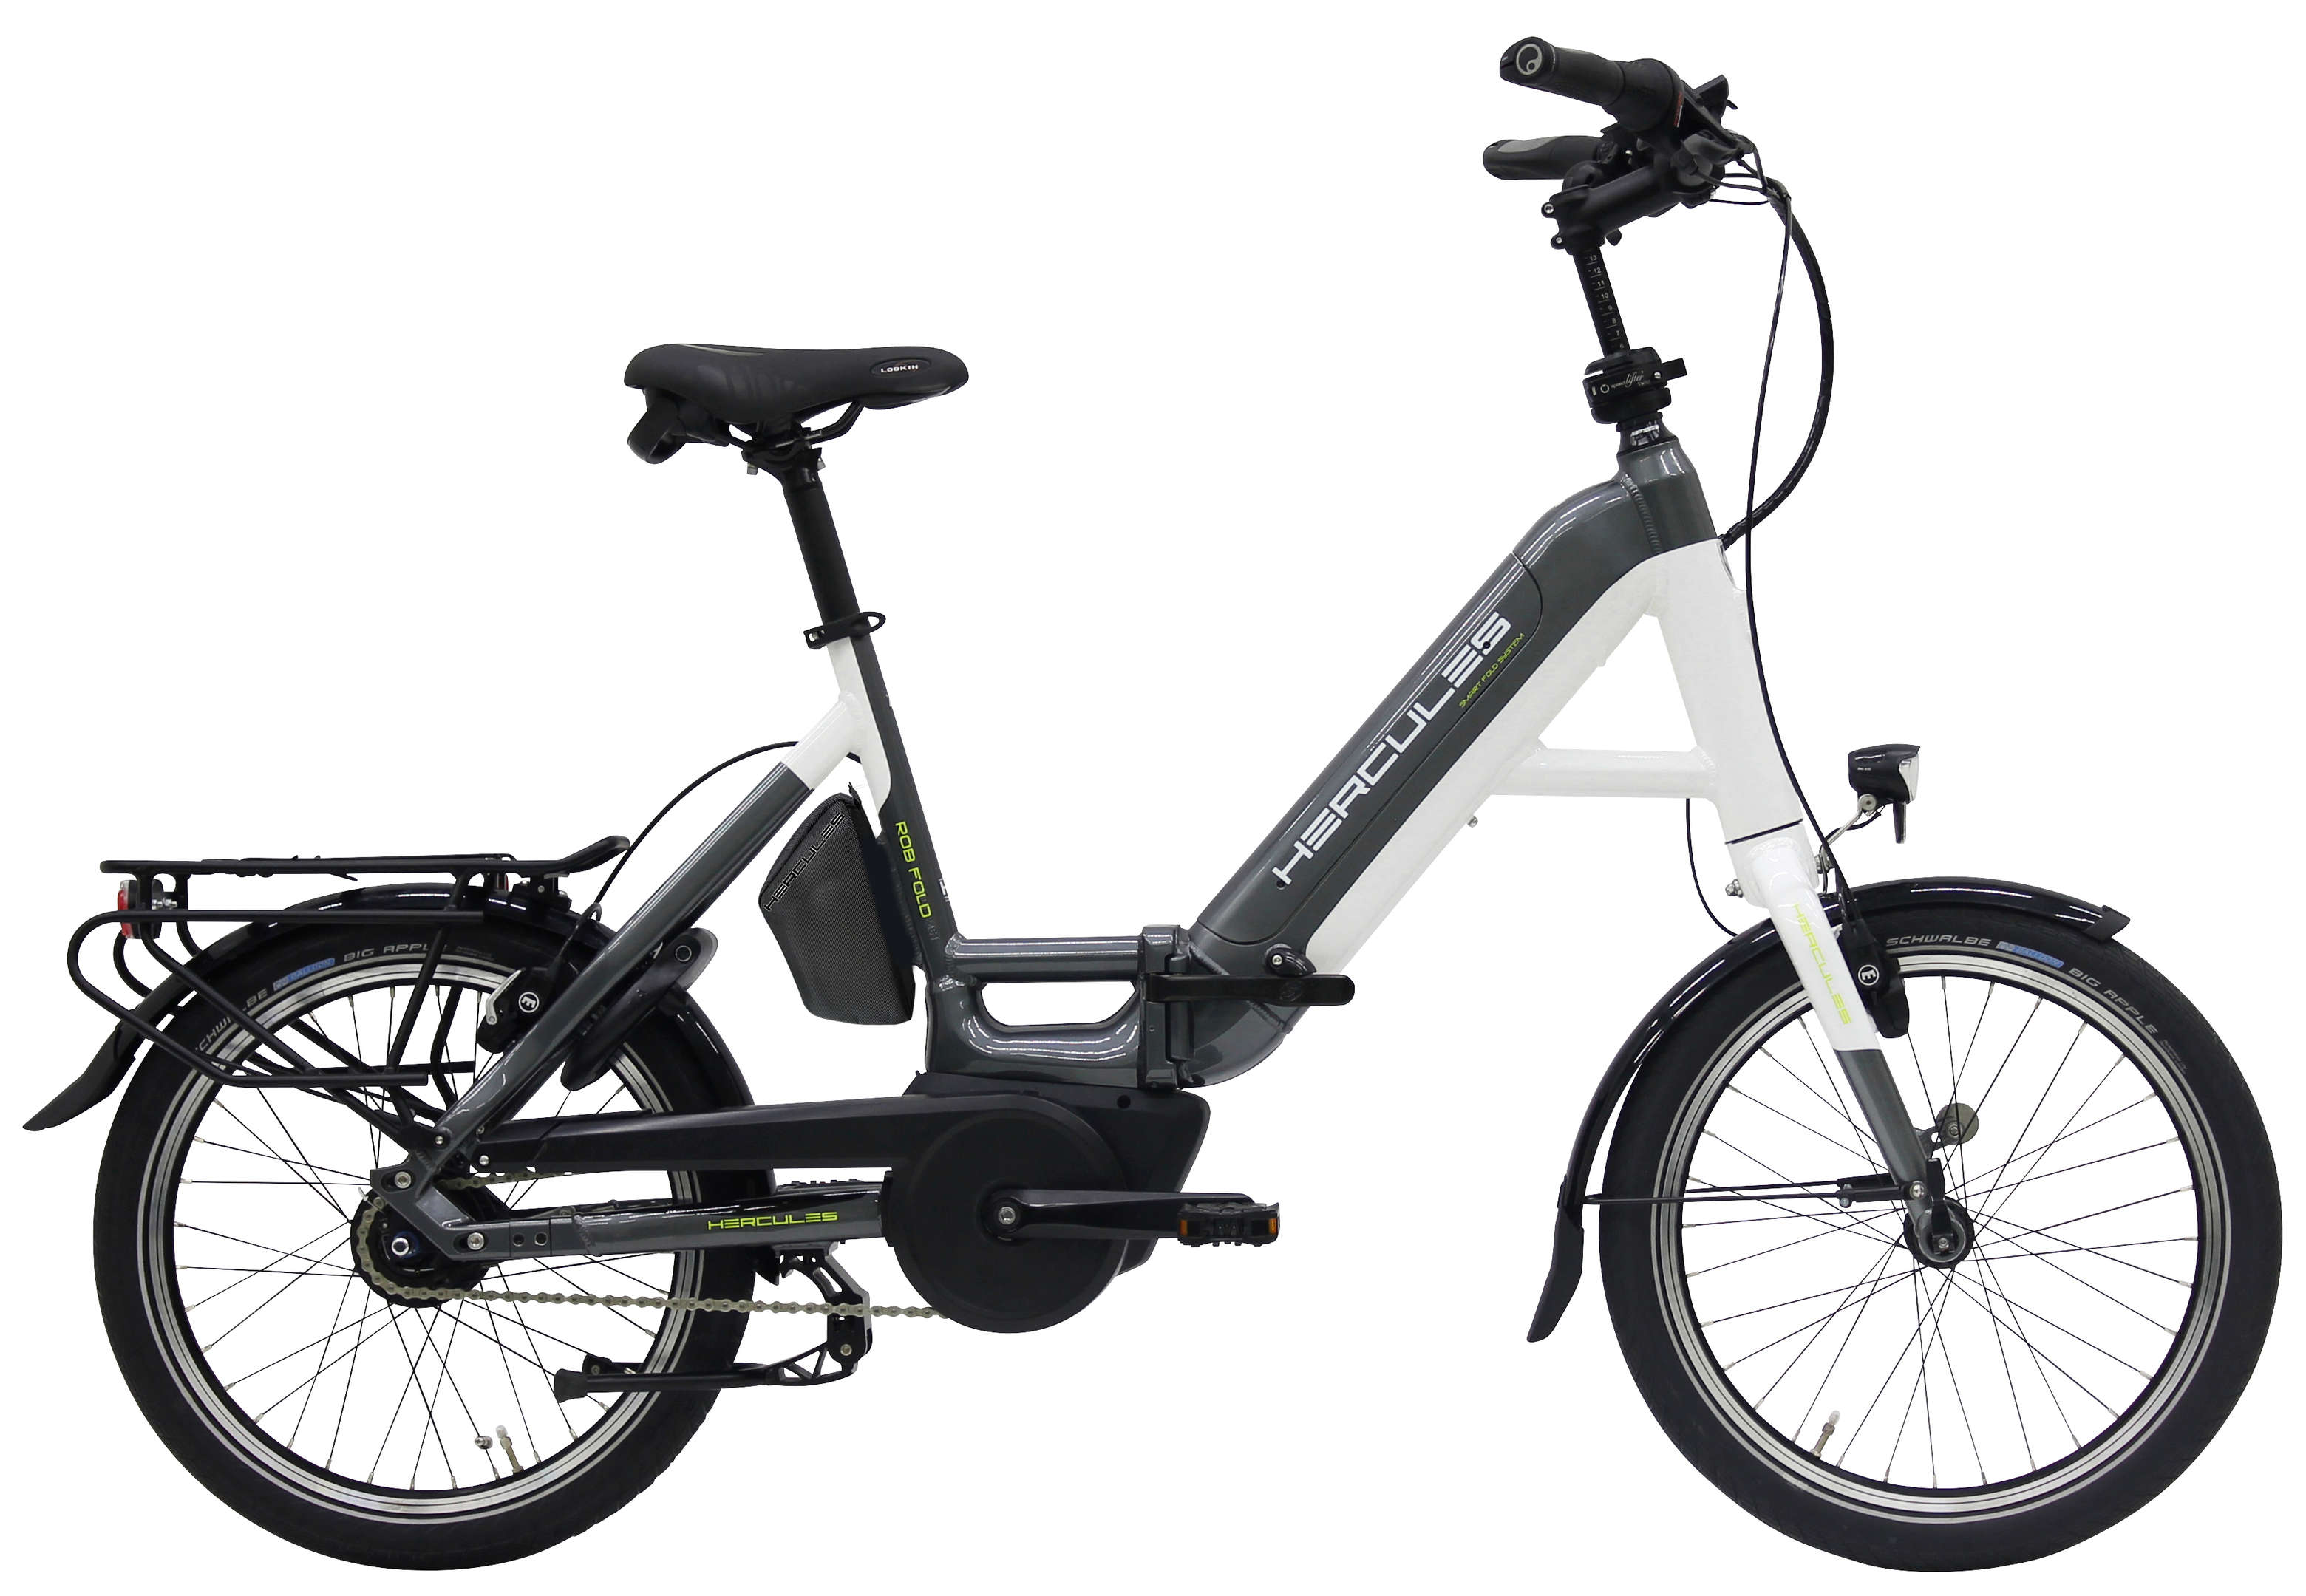 hercules e bike rob fold i r8 eurorad bikeleasingeurorad bikeleasing. Black Bedroom Furniture Sets. Home Design Ideas